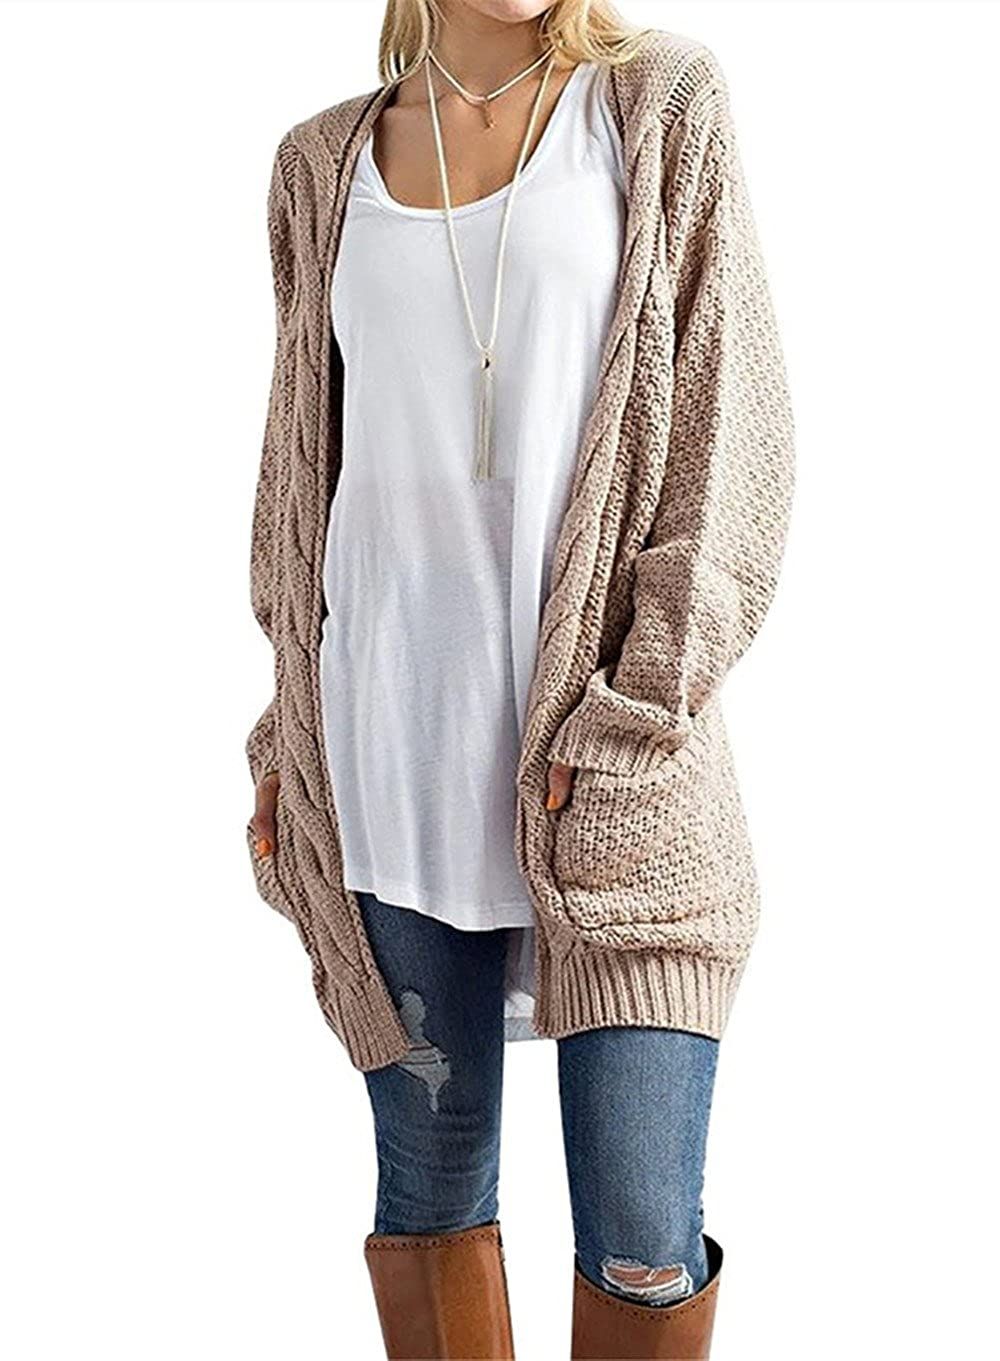 20bd613bce0 S-4XL Women Cable Knit Open Front Sweater Cardigan Warm Jacket Casual  Outerwear at Amazon Women s Clothing store